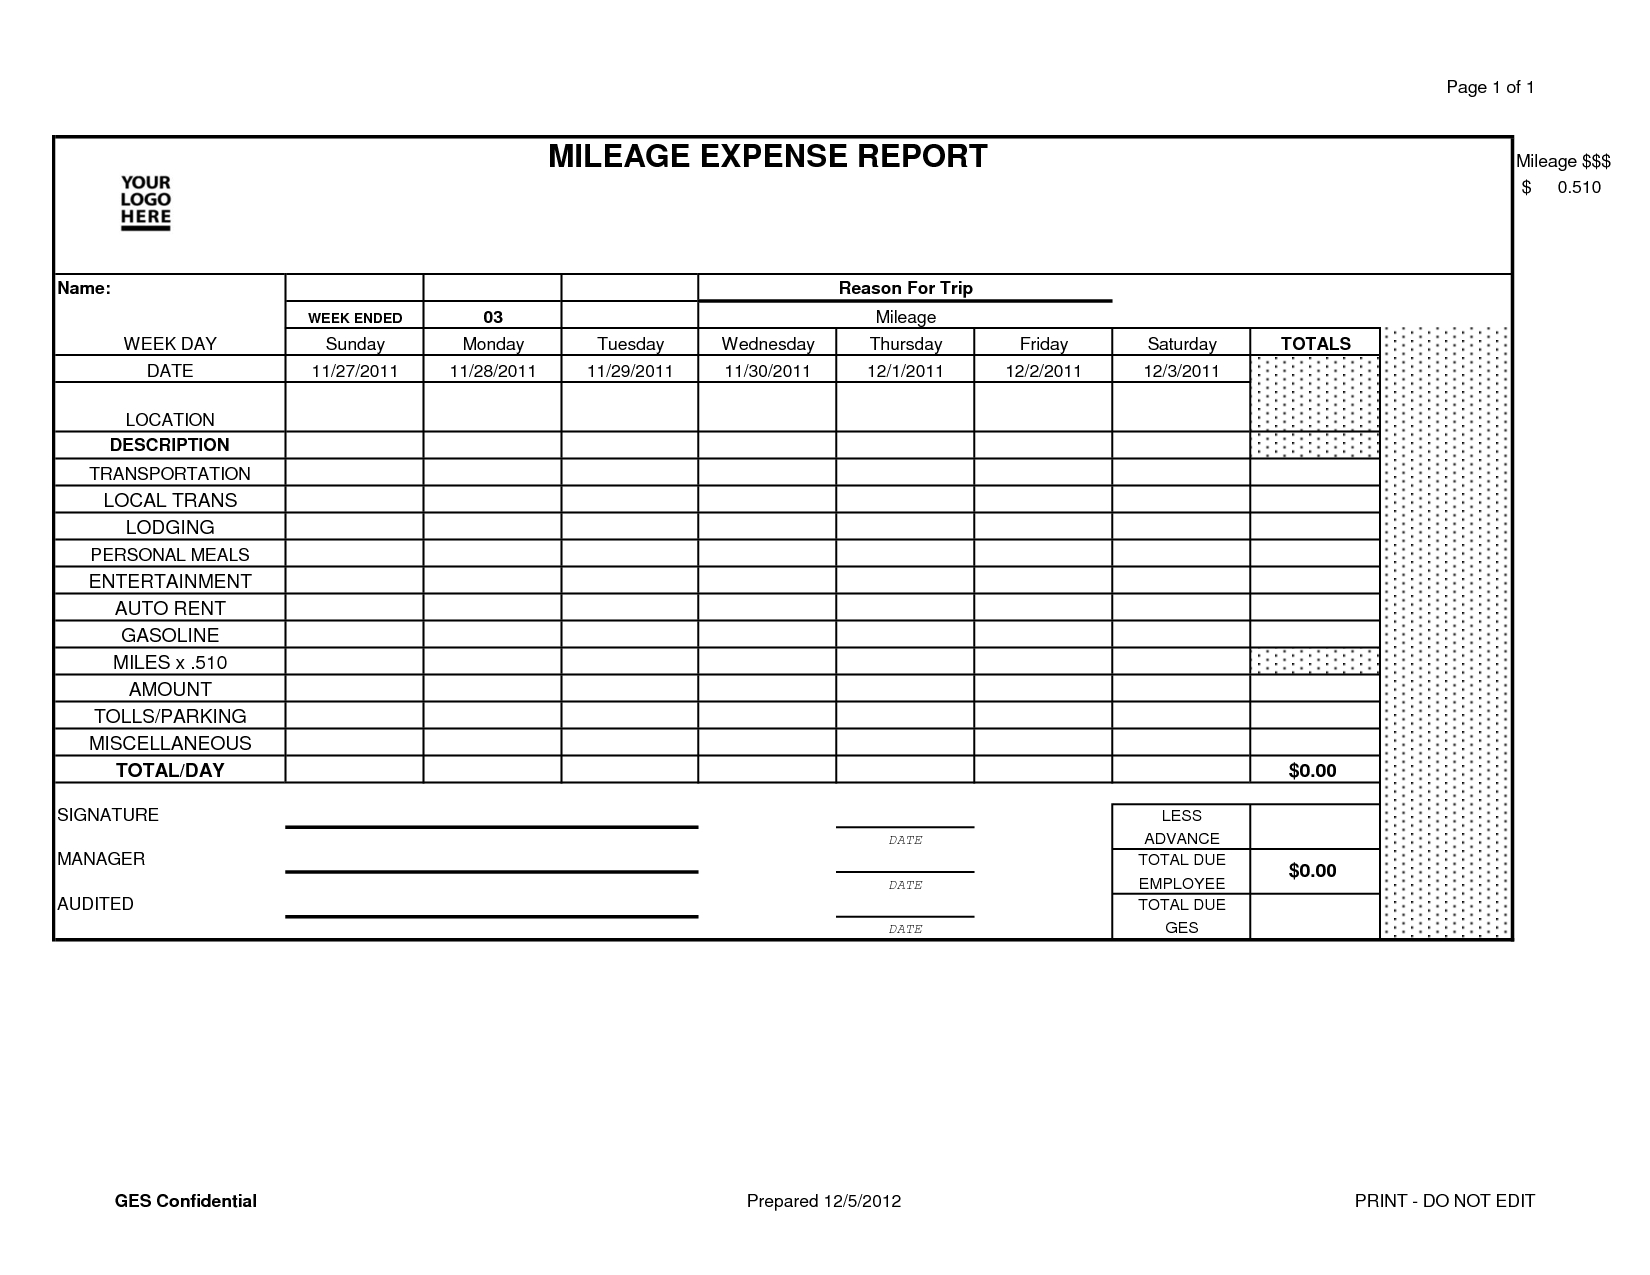 Annual Expenses Spreadsheet Intended For 15+ Professional Samples To Create Business Annual Expense Report